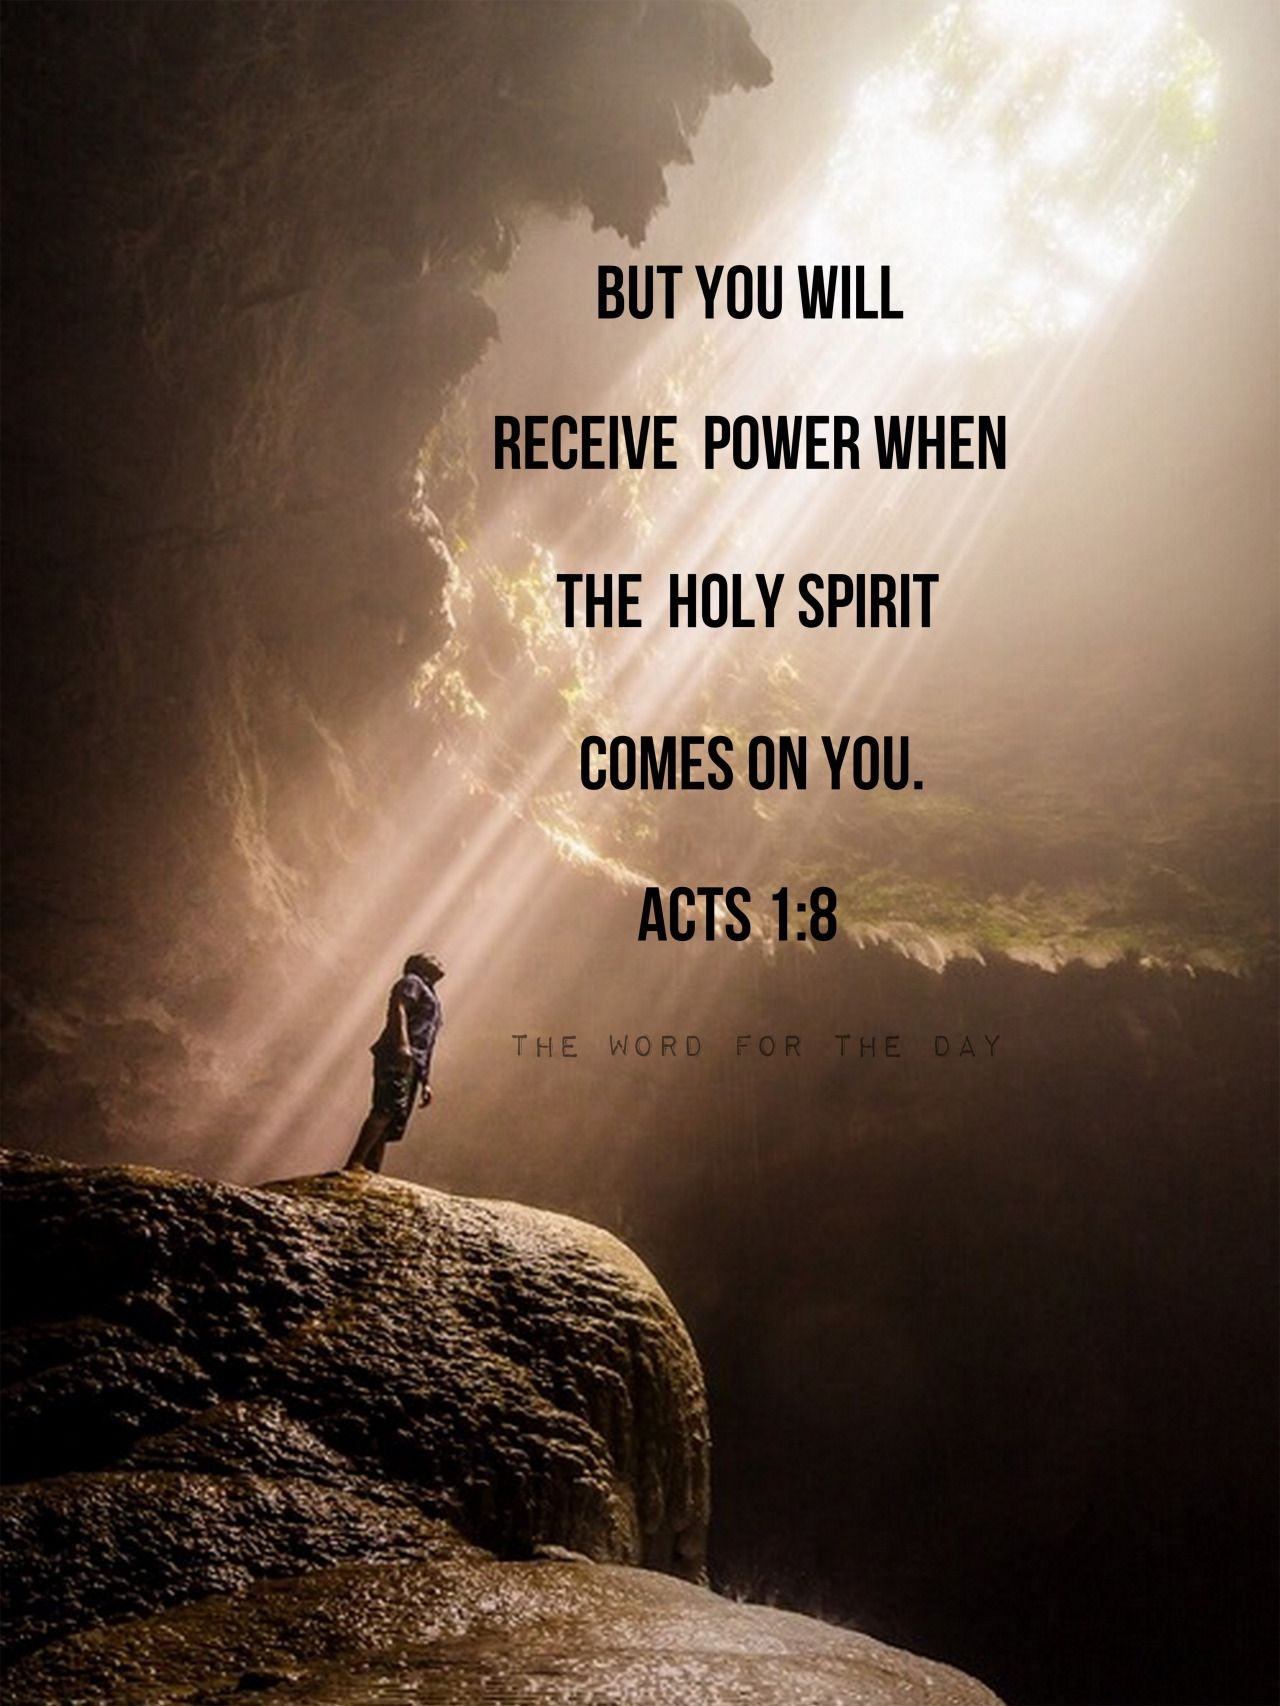 In Acts 1:8, Jesus promises to send the Holy Spirit upon his gather disciples so that they in return can speak far and wide of the grace of God and salvation.